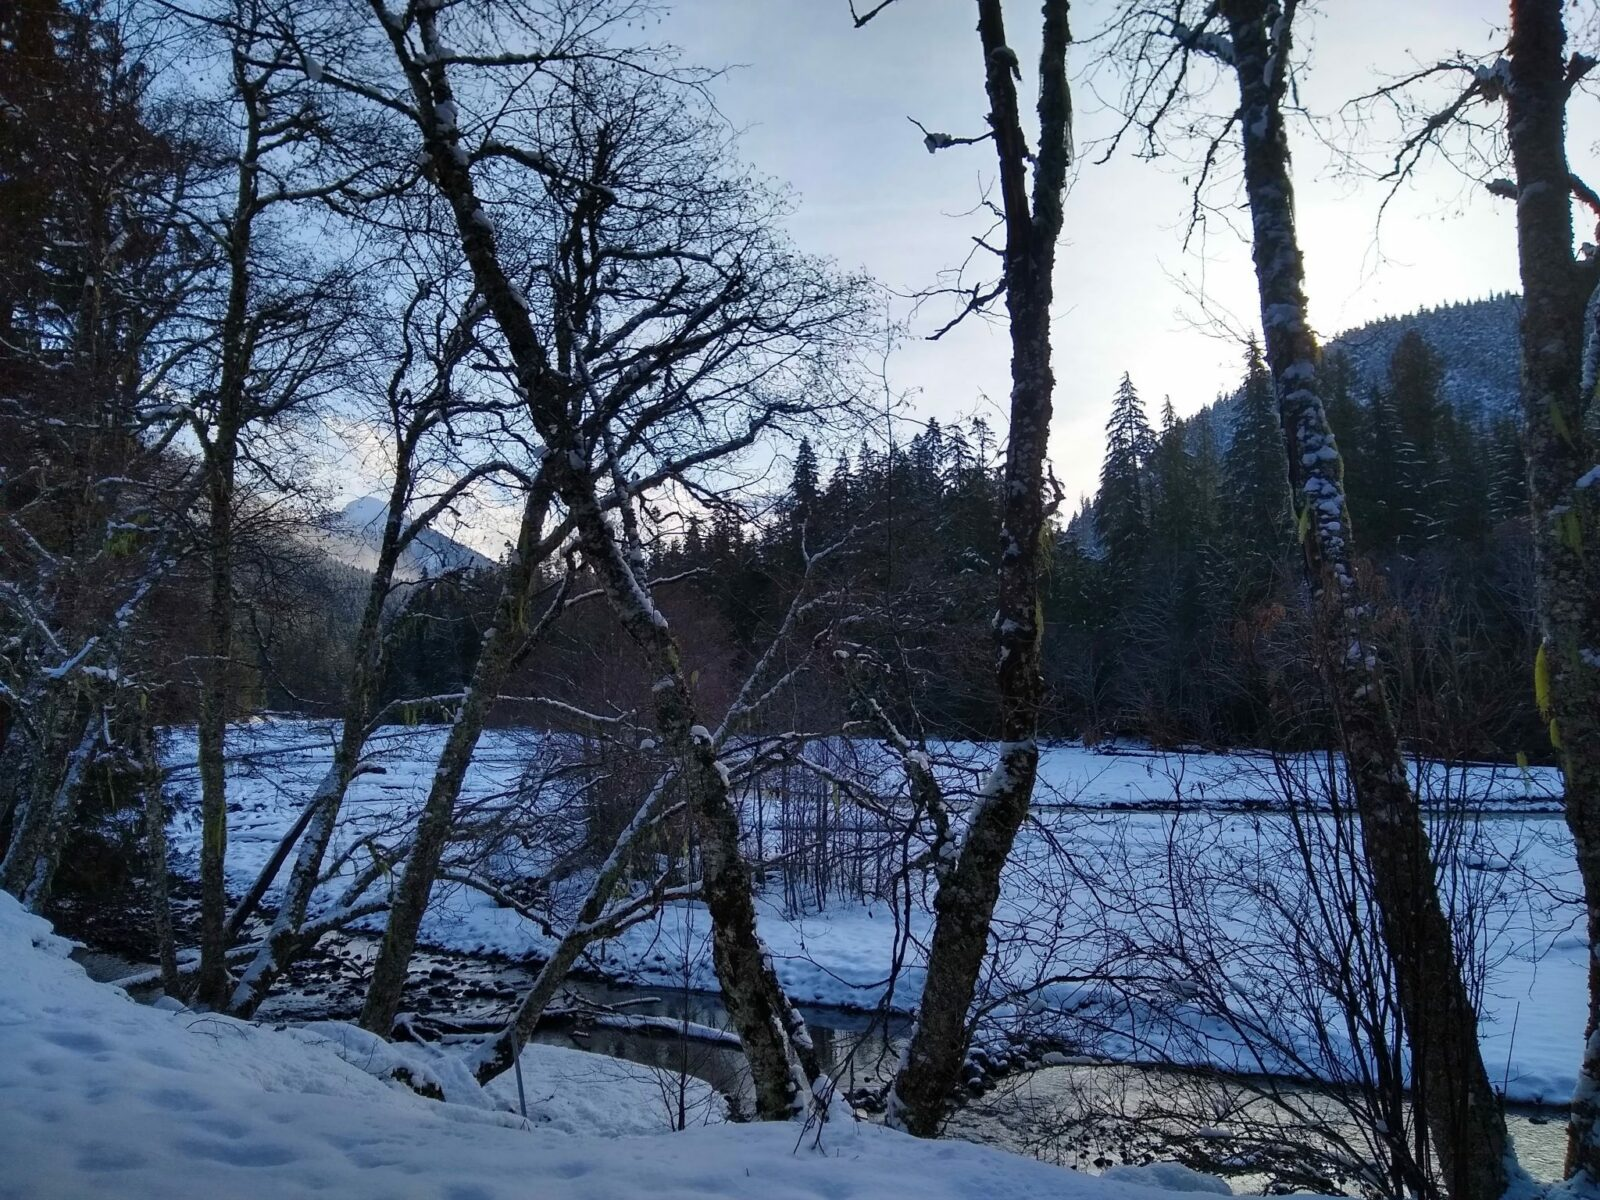 A partially frozen river surrounded by snow and winter trees with a light dusting of snow. It is dusk and there are higher mountains visible in the distance